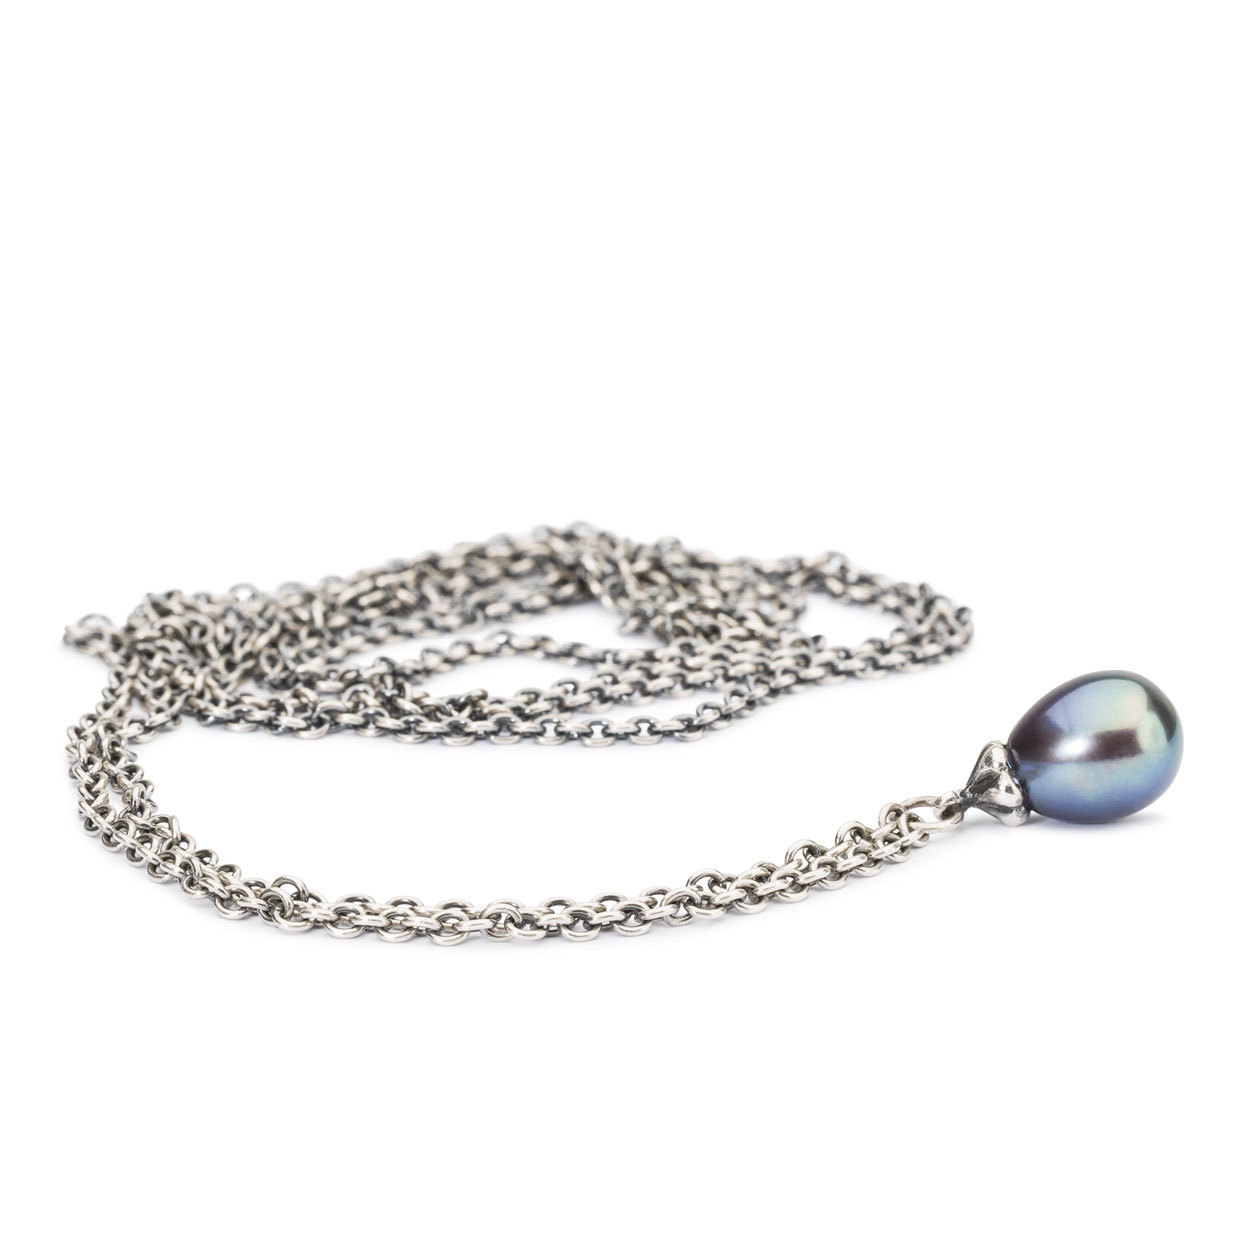 Trollbeads TAGFA-00060 Ketting Peacock Parel zilver 60 cm